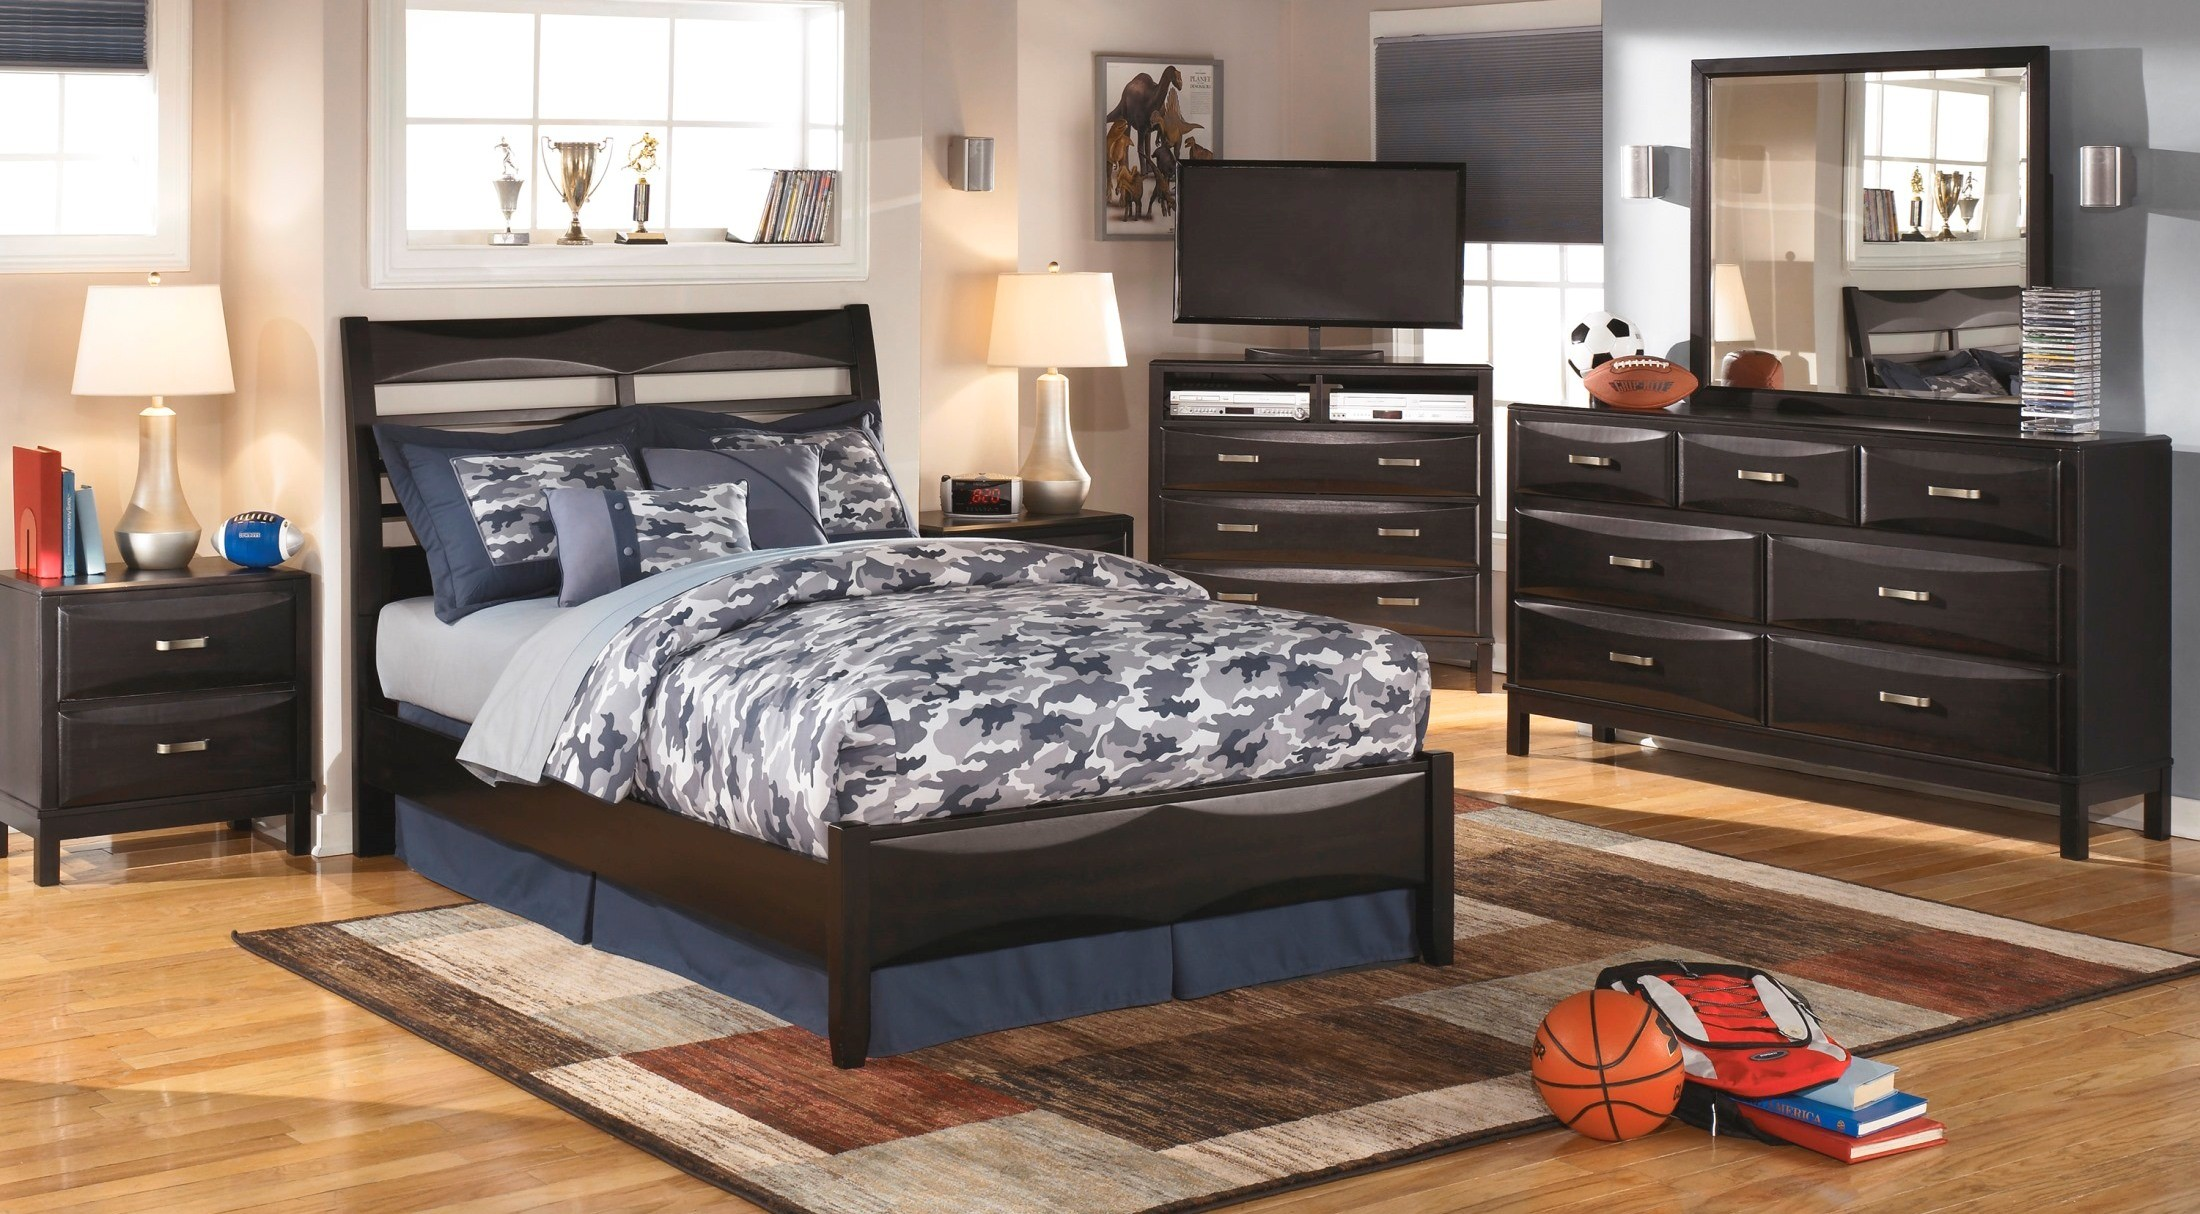 kira youth panel bedroom set from ashley b473 84 86 87